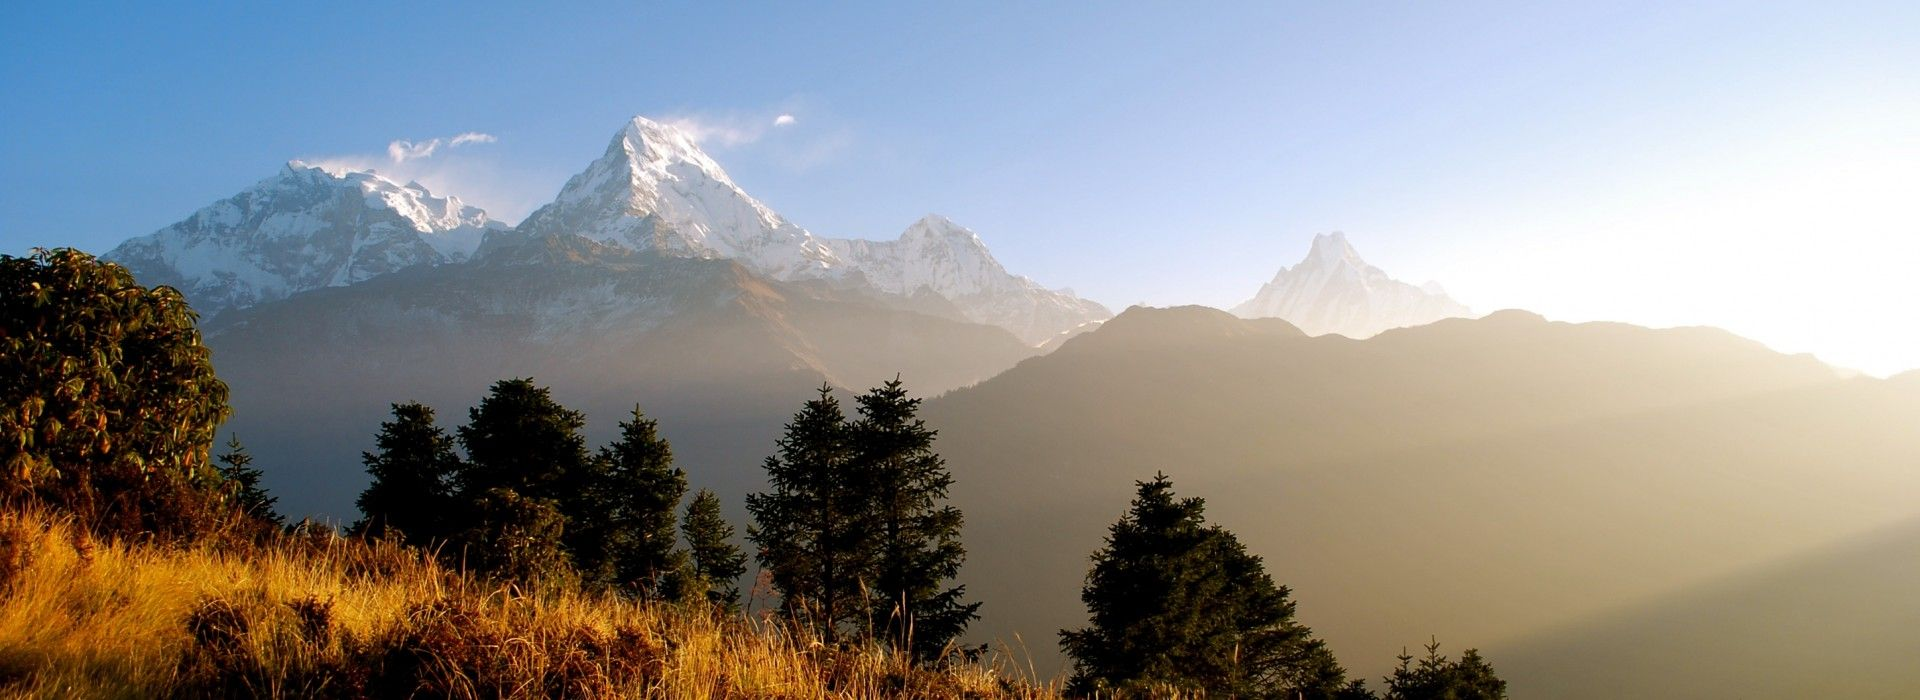 Boat tours, water sports and marine wildlife in Nepal